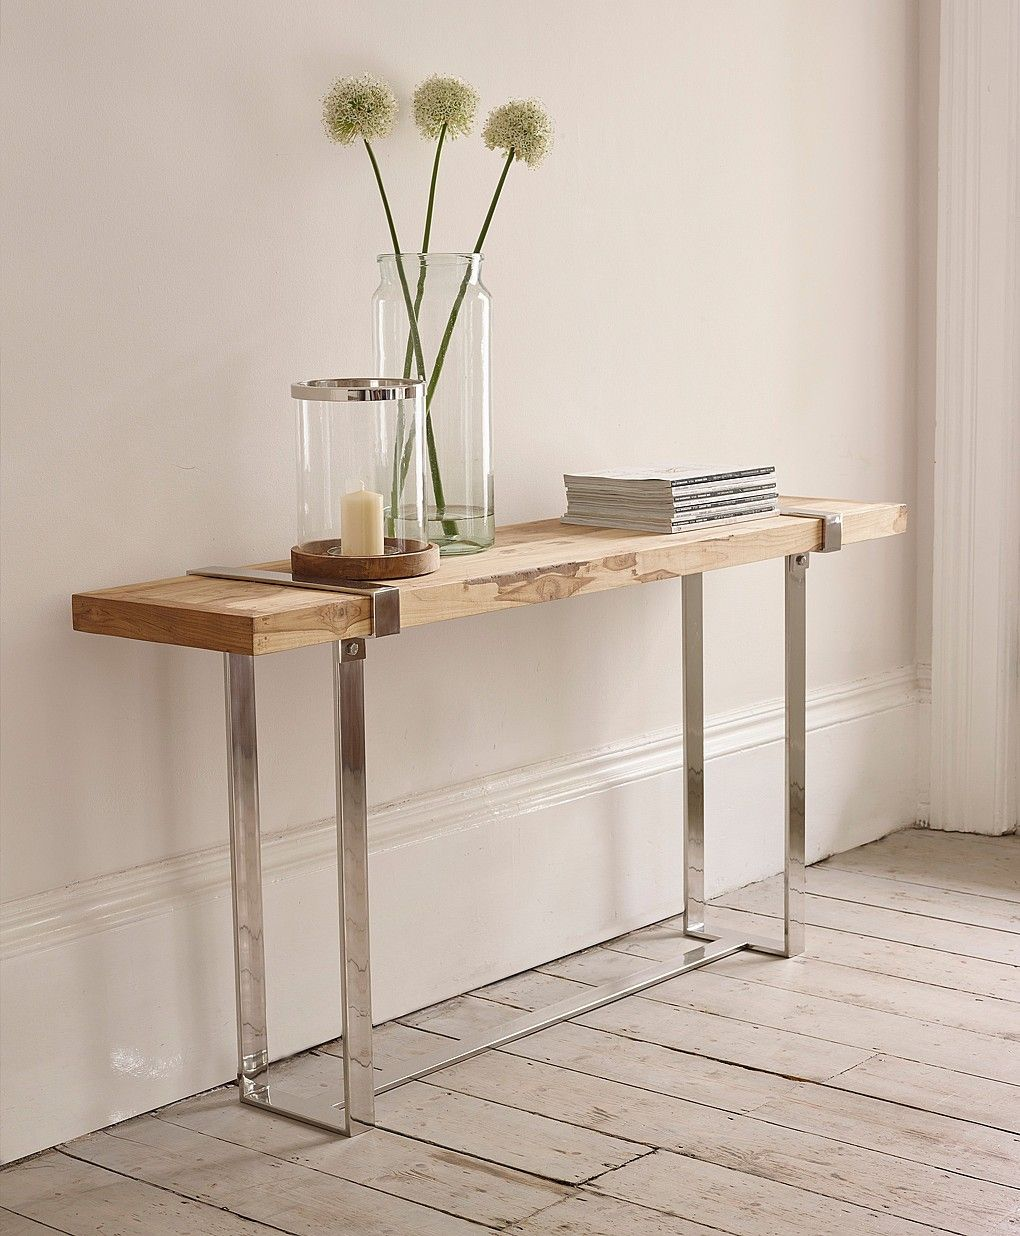 lombok plato console table from lombok side table home decor rh pinterest com